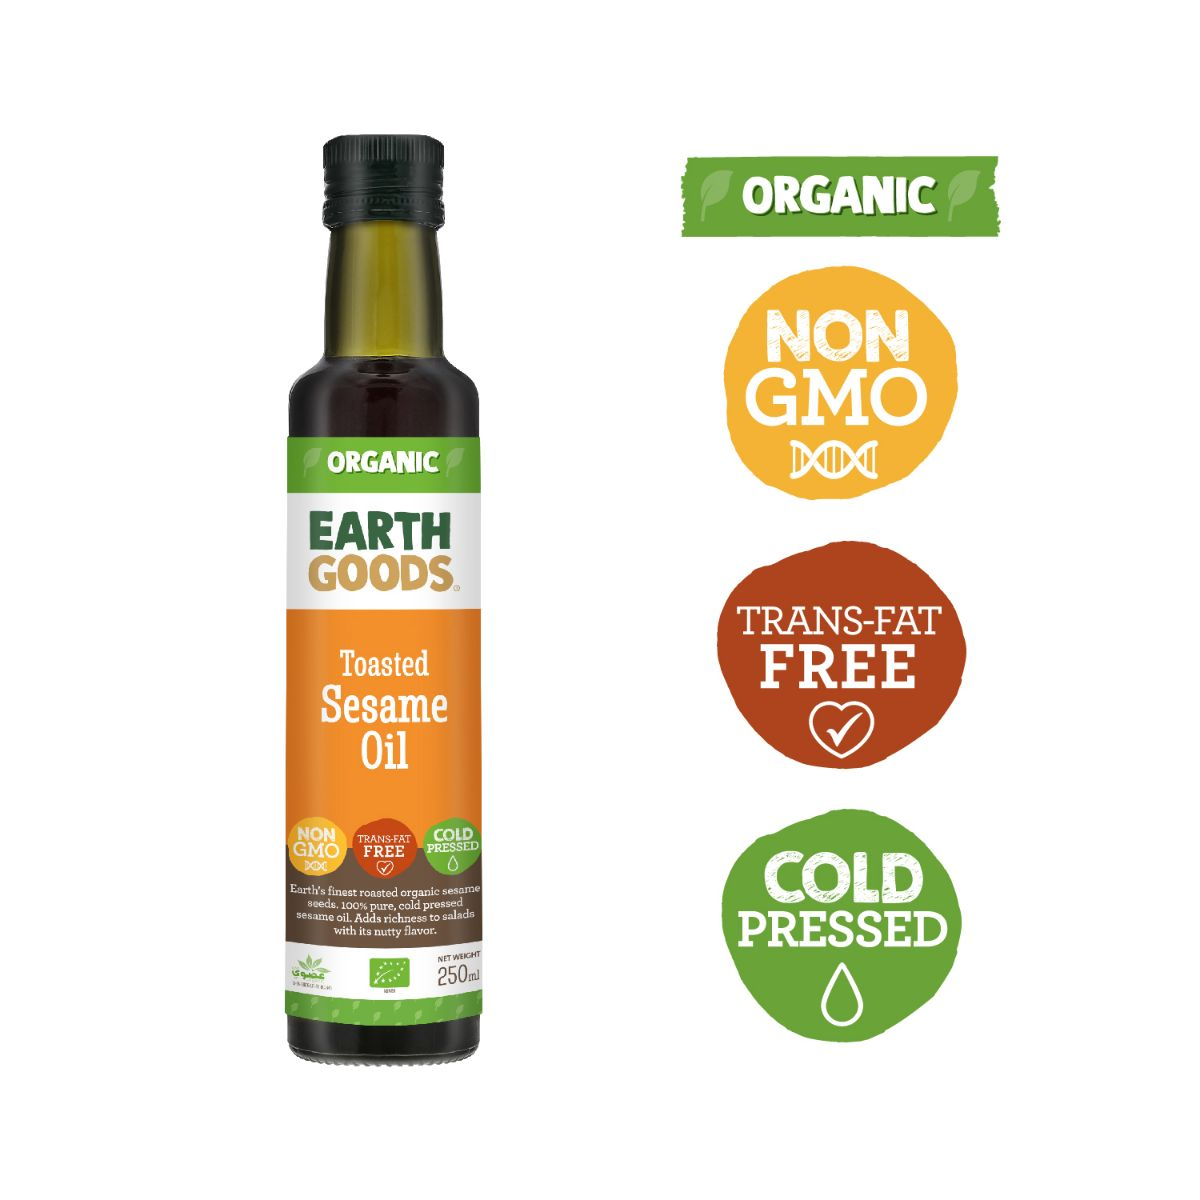 Earth Goods Organic Toasted Sesame Oil - 250ml